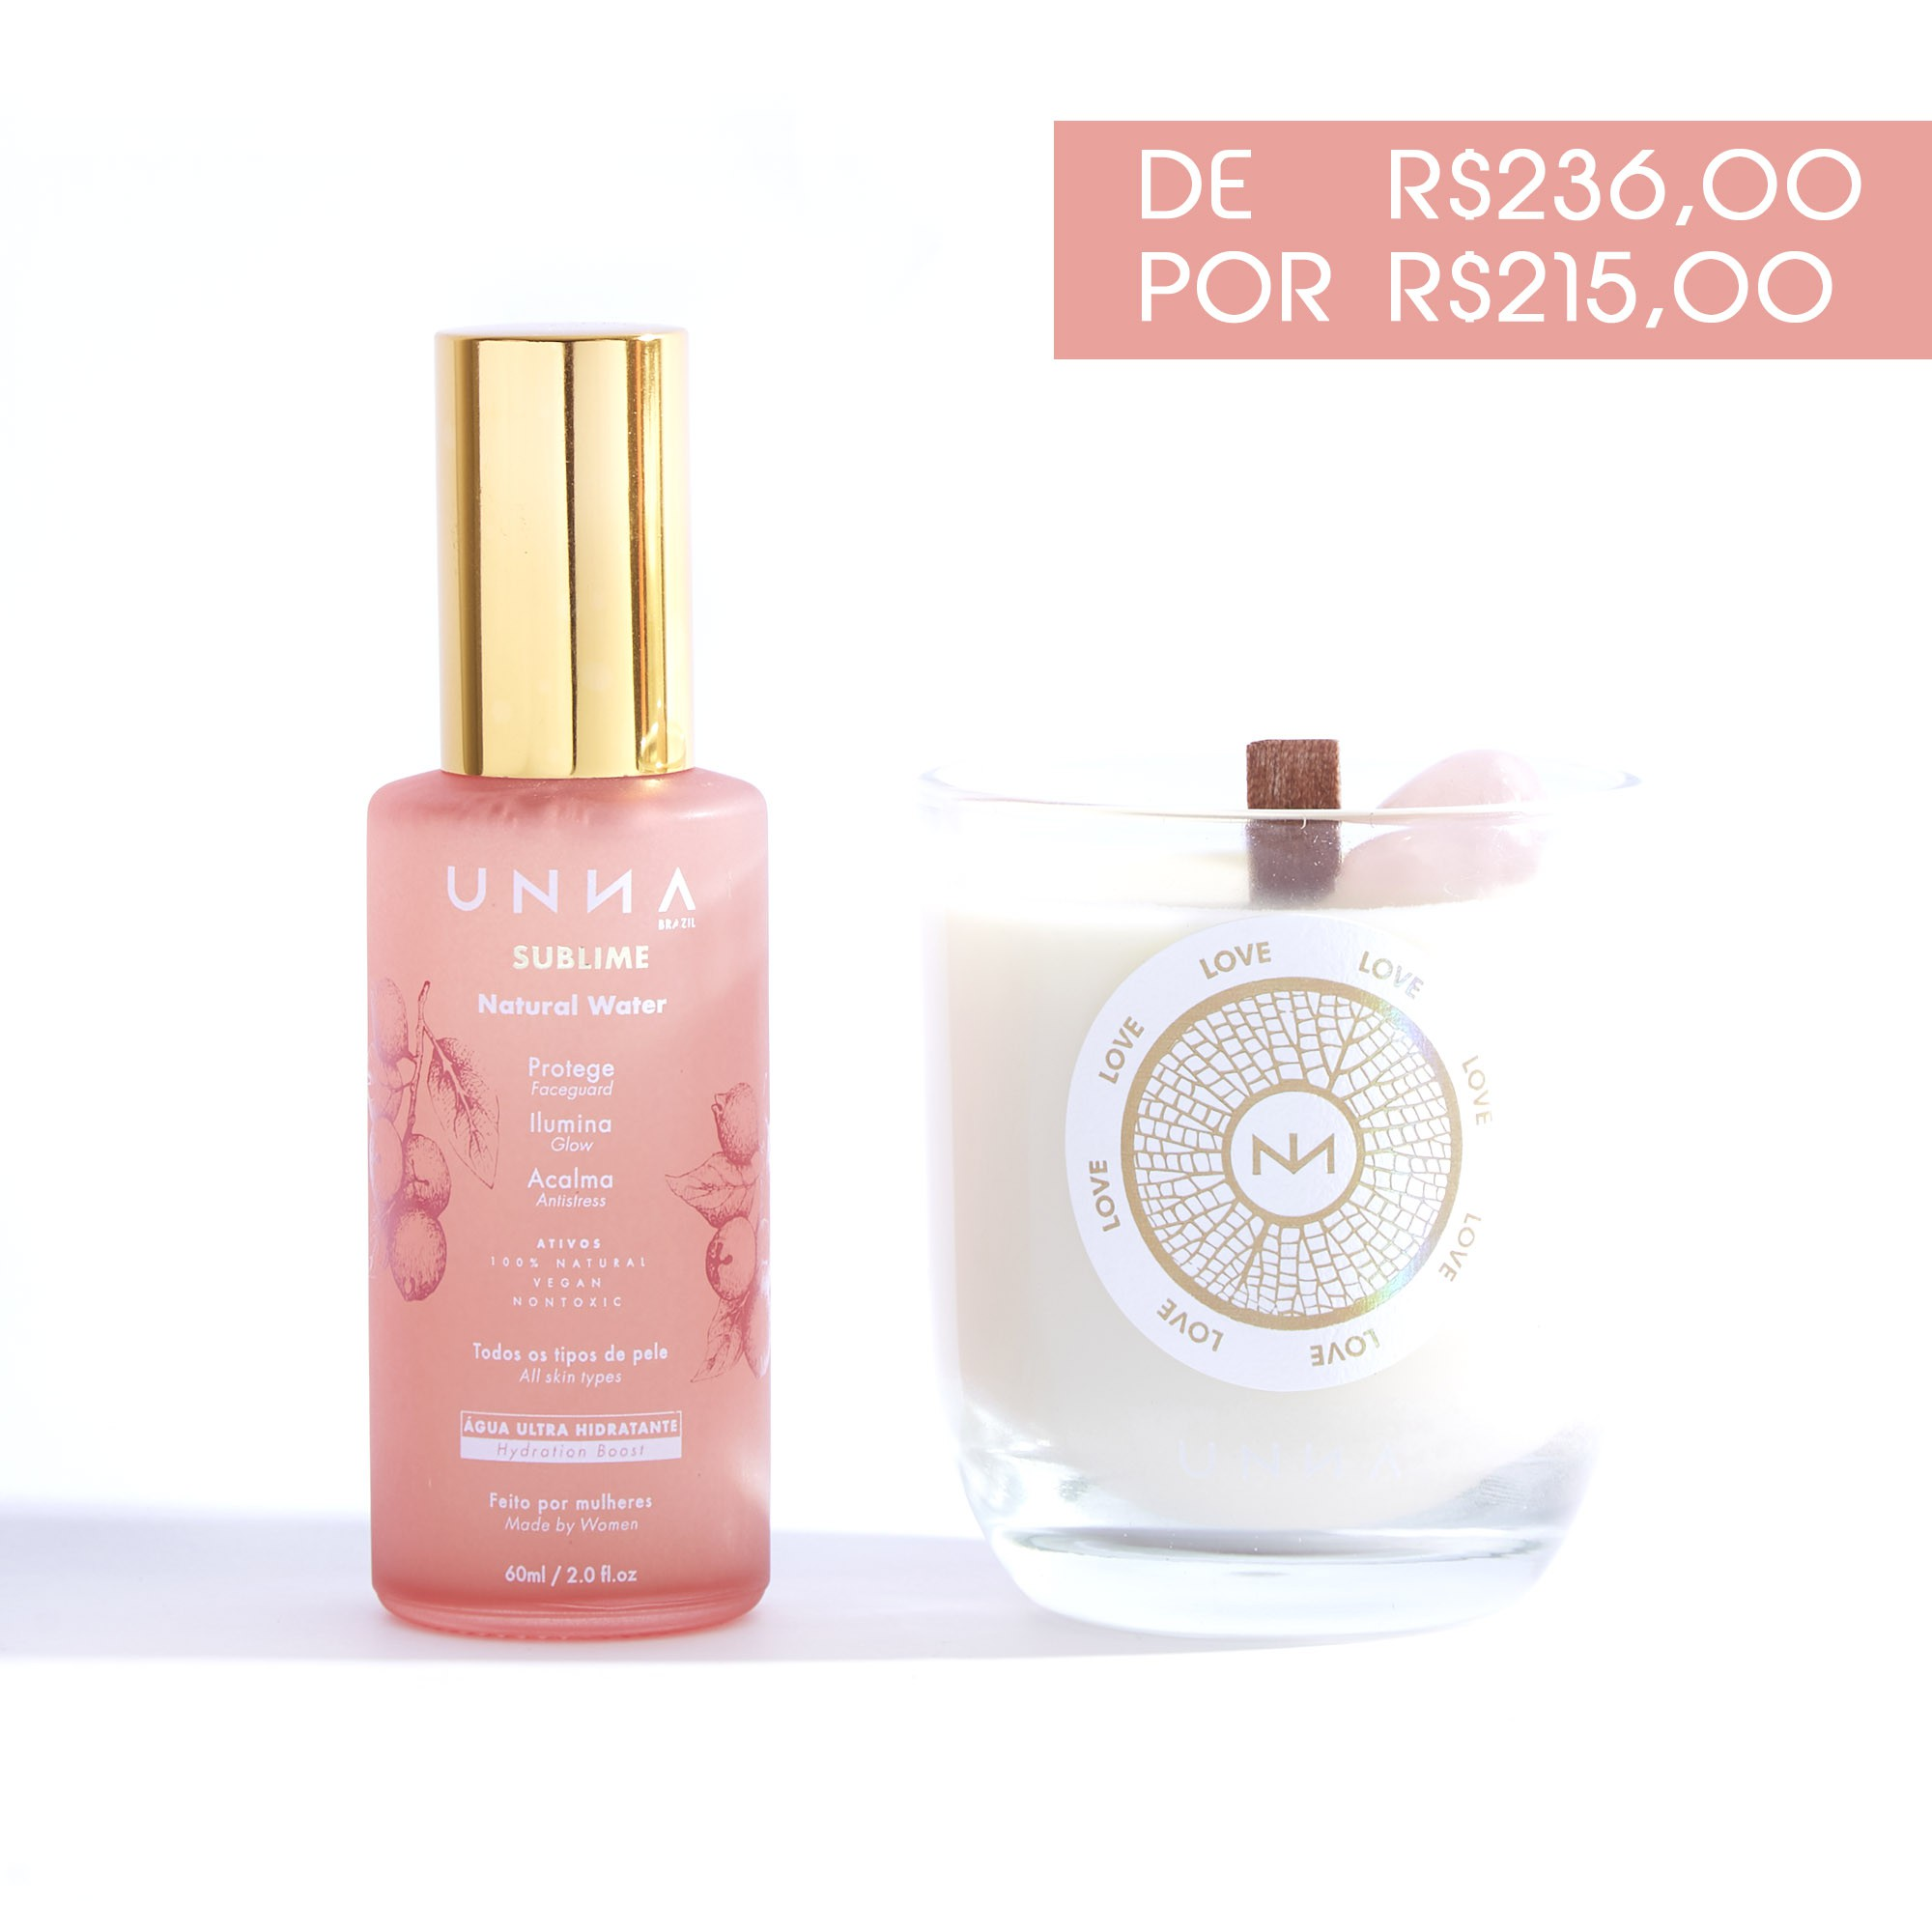 COMBO ÁGUA SUBLIME 60ml + VELA LOVE